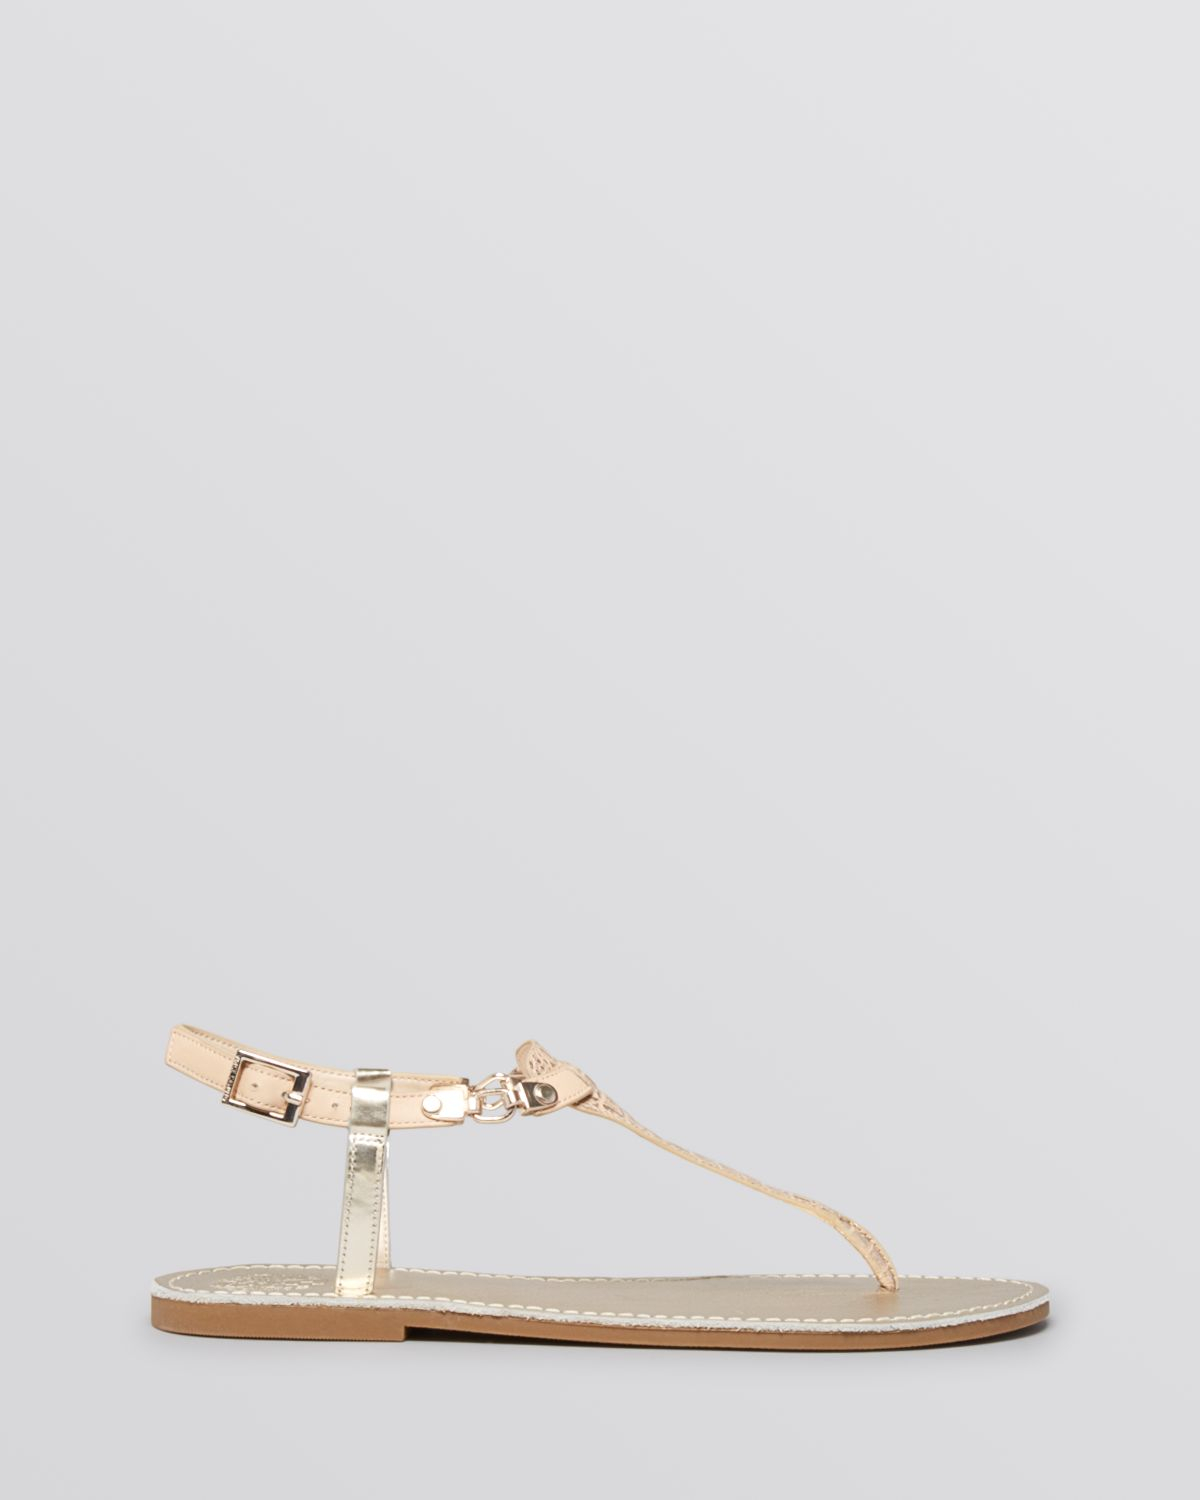 088a7d2e40d1 Vince Camuto Flat Thong Sandals Itelli Chain in Natural - Lyst